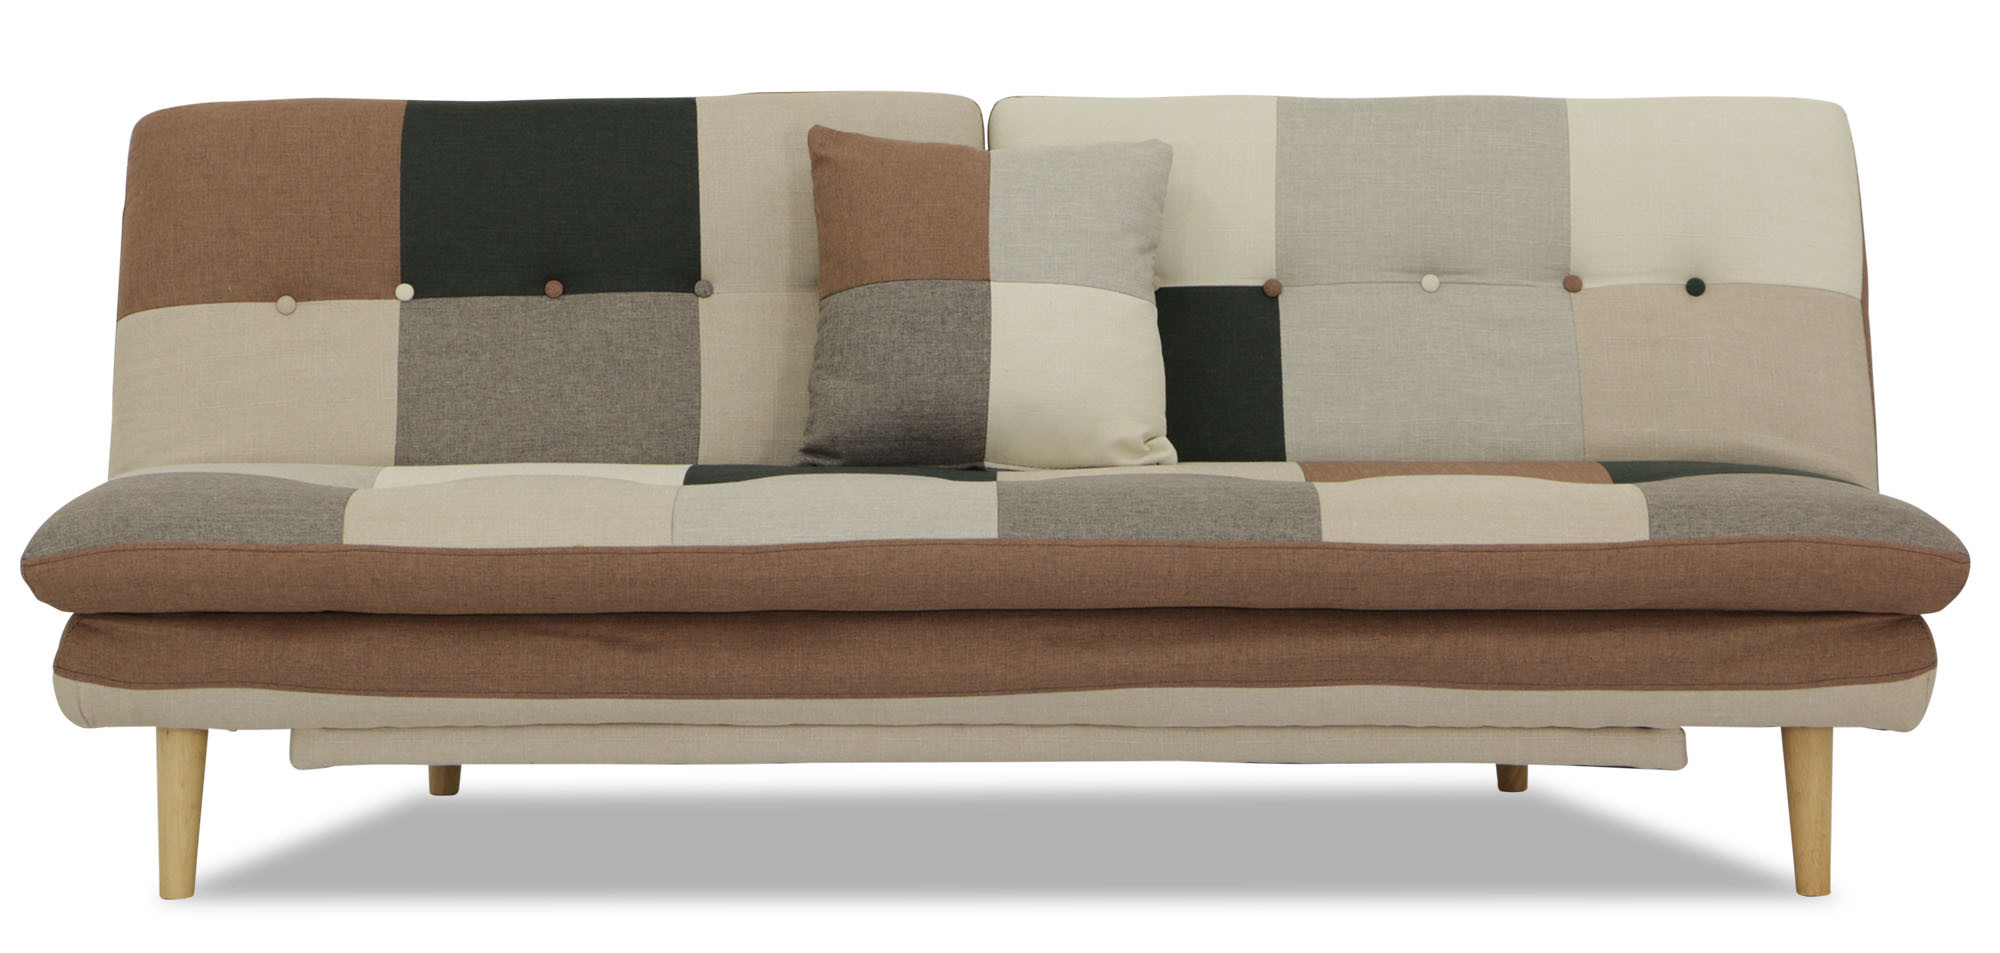 Jeza Patchwork Sofa Bed Grey Mix